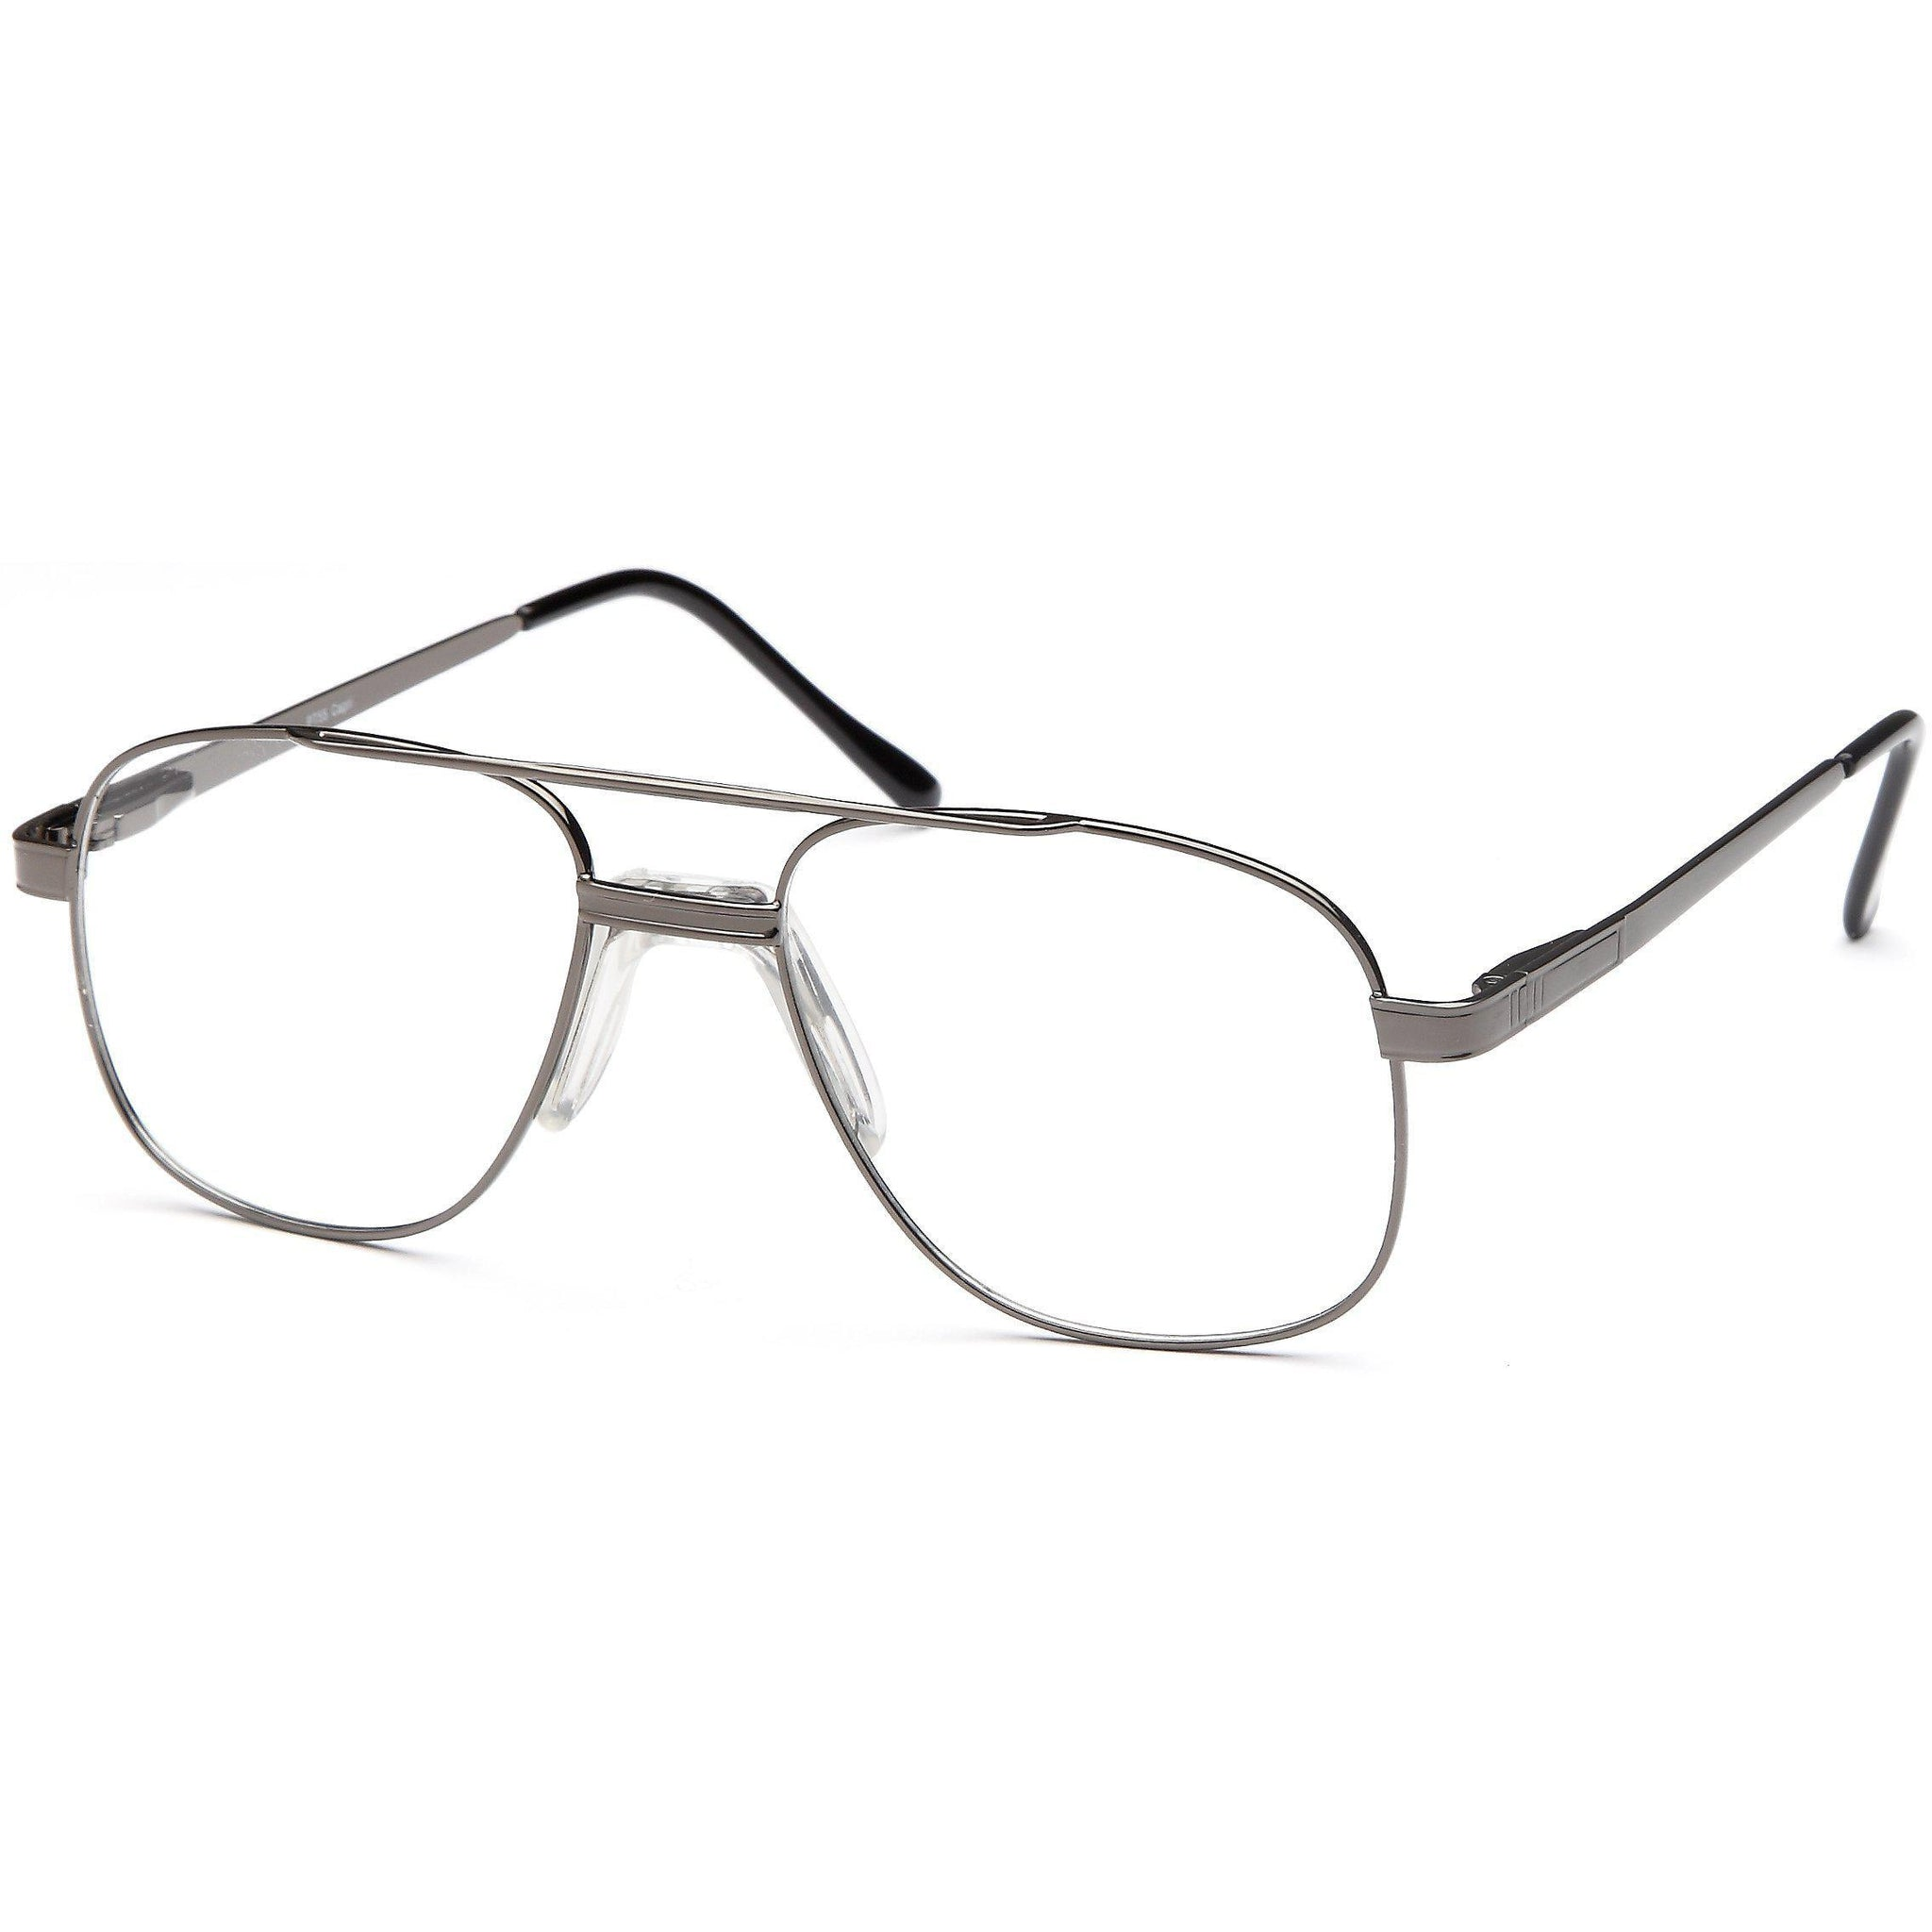 Appletree Prescription Glasses PT 55 Eyeglasses Frame